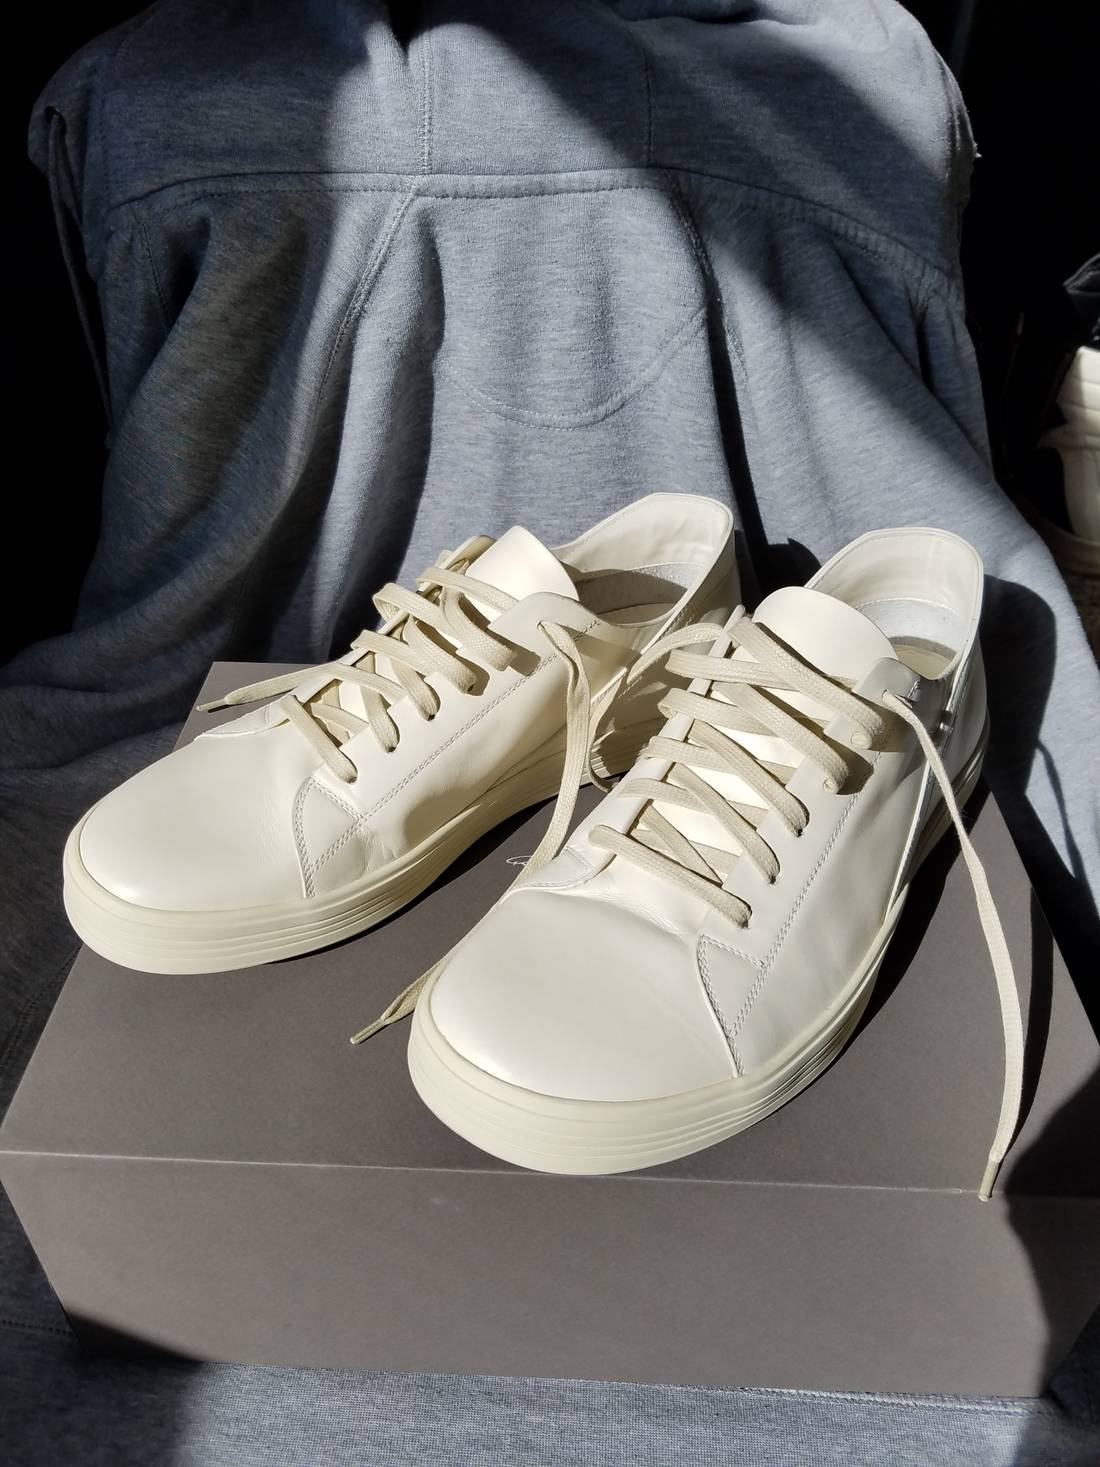 Rick Owens White & Off-White Geothrasher Low Sneakers